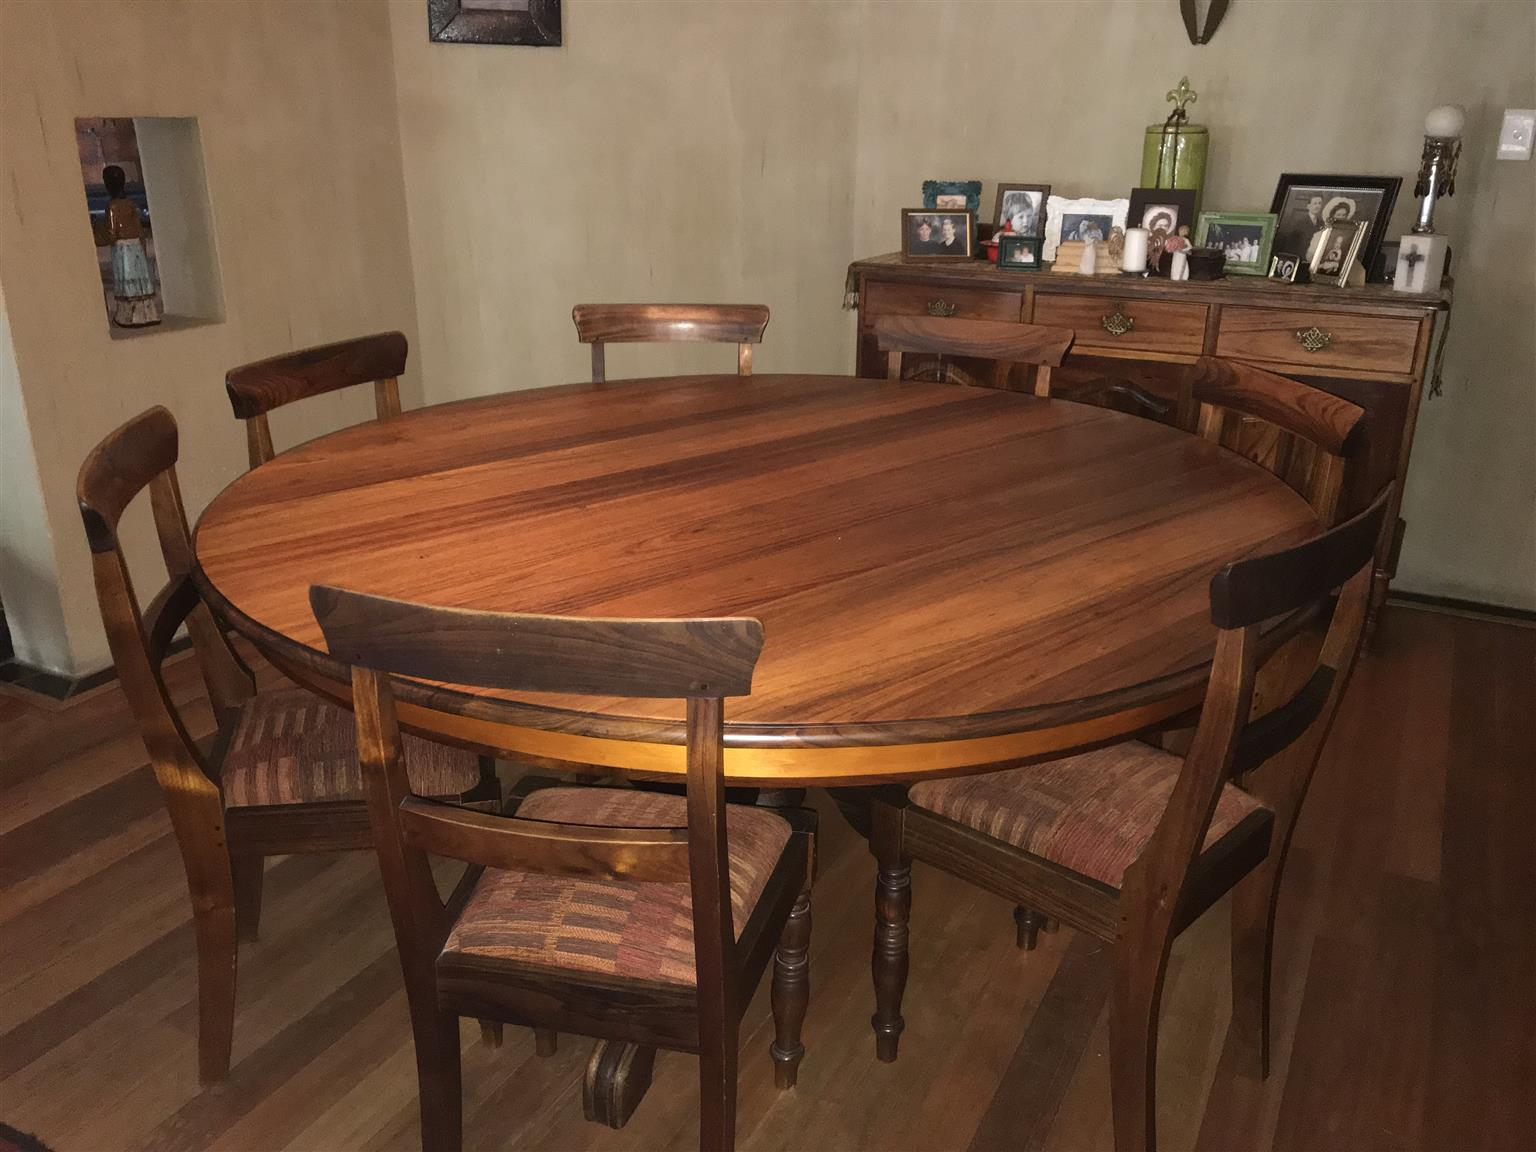 Blackwood/Yellowood 8 Seater Dining table & Sidboard suite